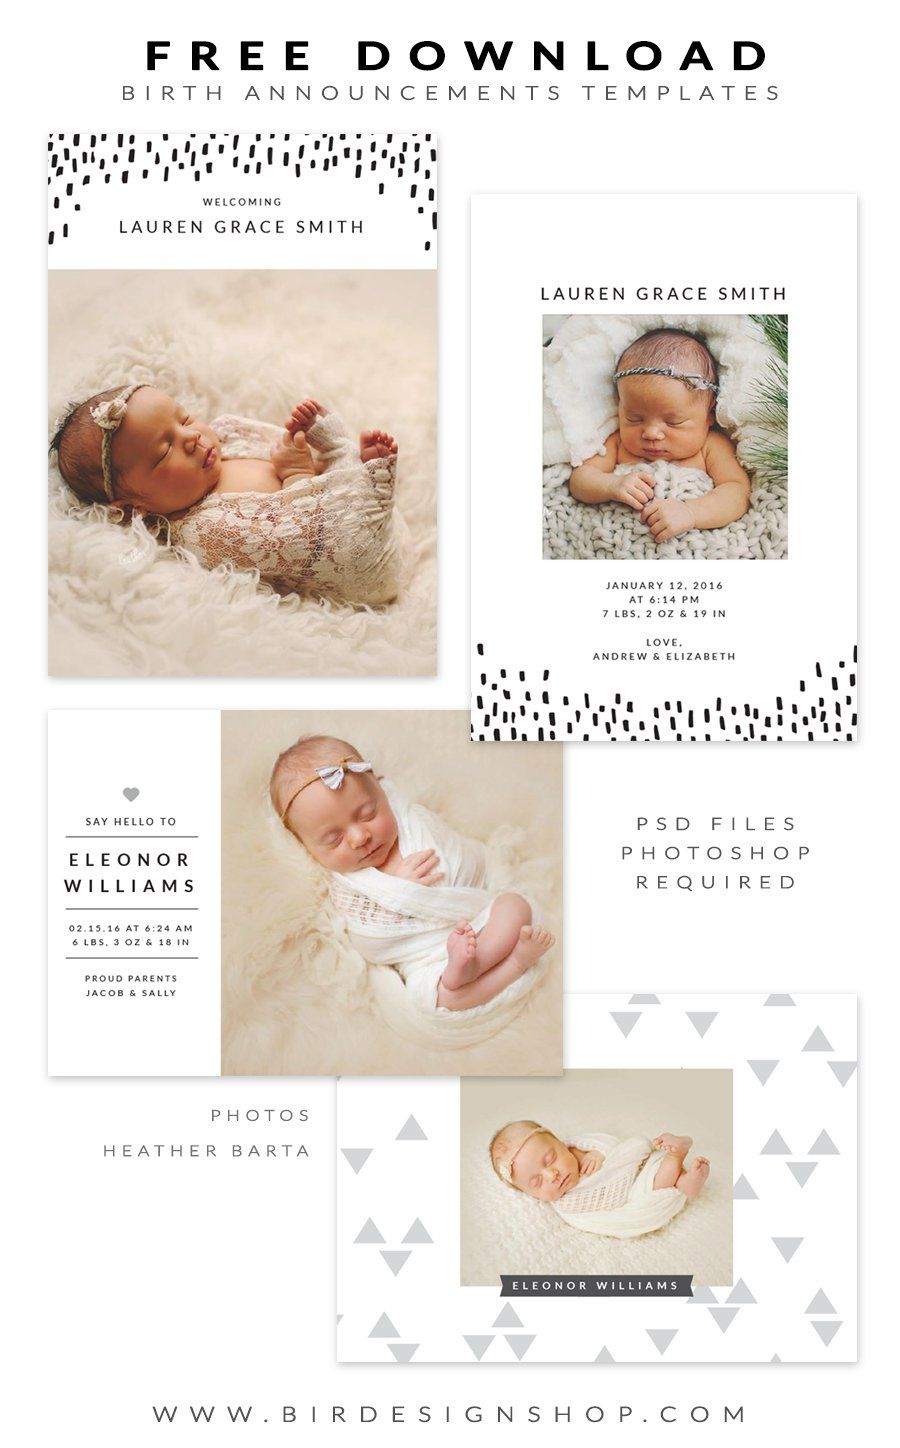 FREE Birth Announcements Templates January Freebie Pinterest - Birth announcement template free download